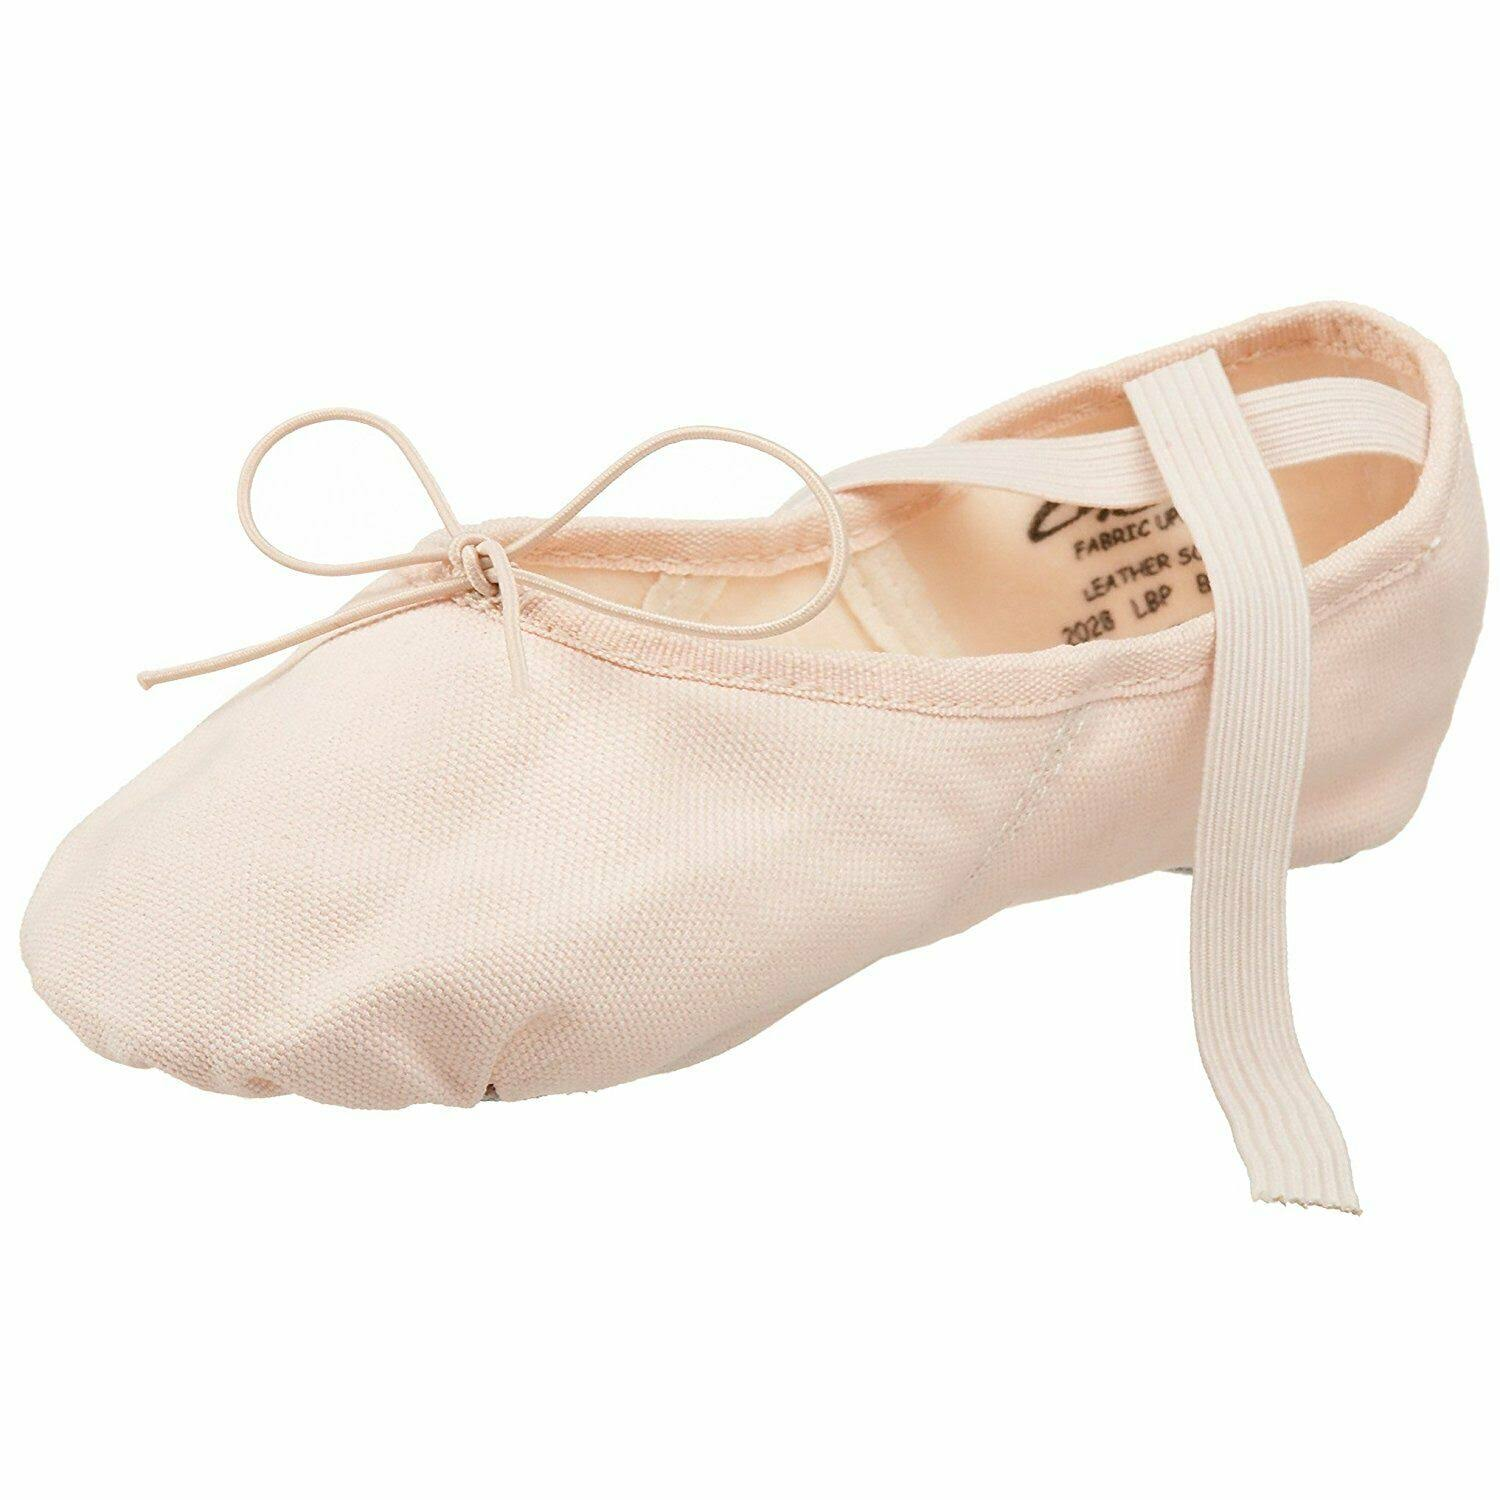 Capezio Adult Canvas Juliet Split Sole Ballet Shoe - Light Pink, 8.5 US